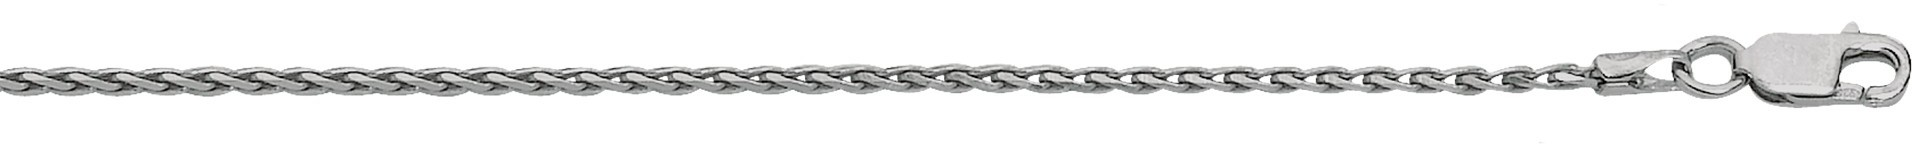 "18"" 1.4mm (0.06"") Polished Diamond Cut 925 Sterling Silver Spiga Chain w/ Lobster Clasp"